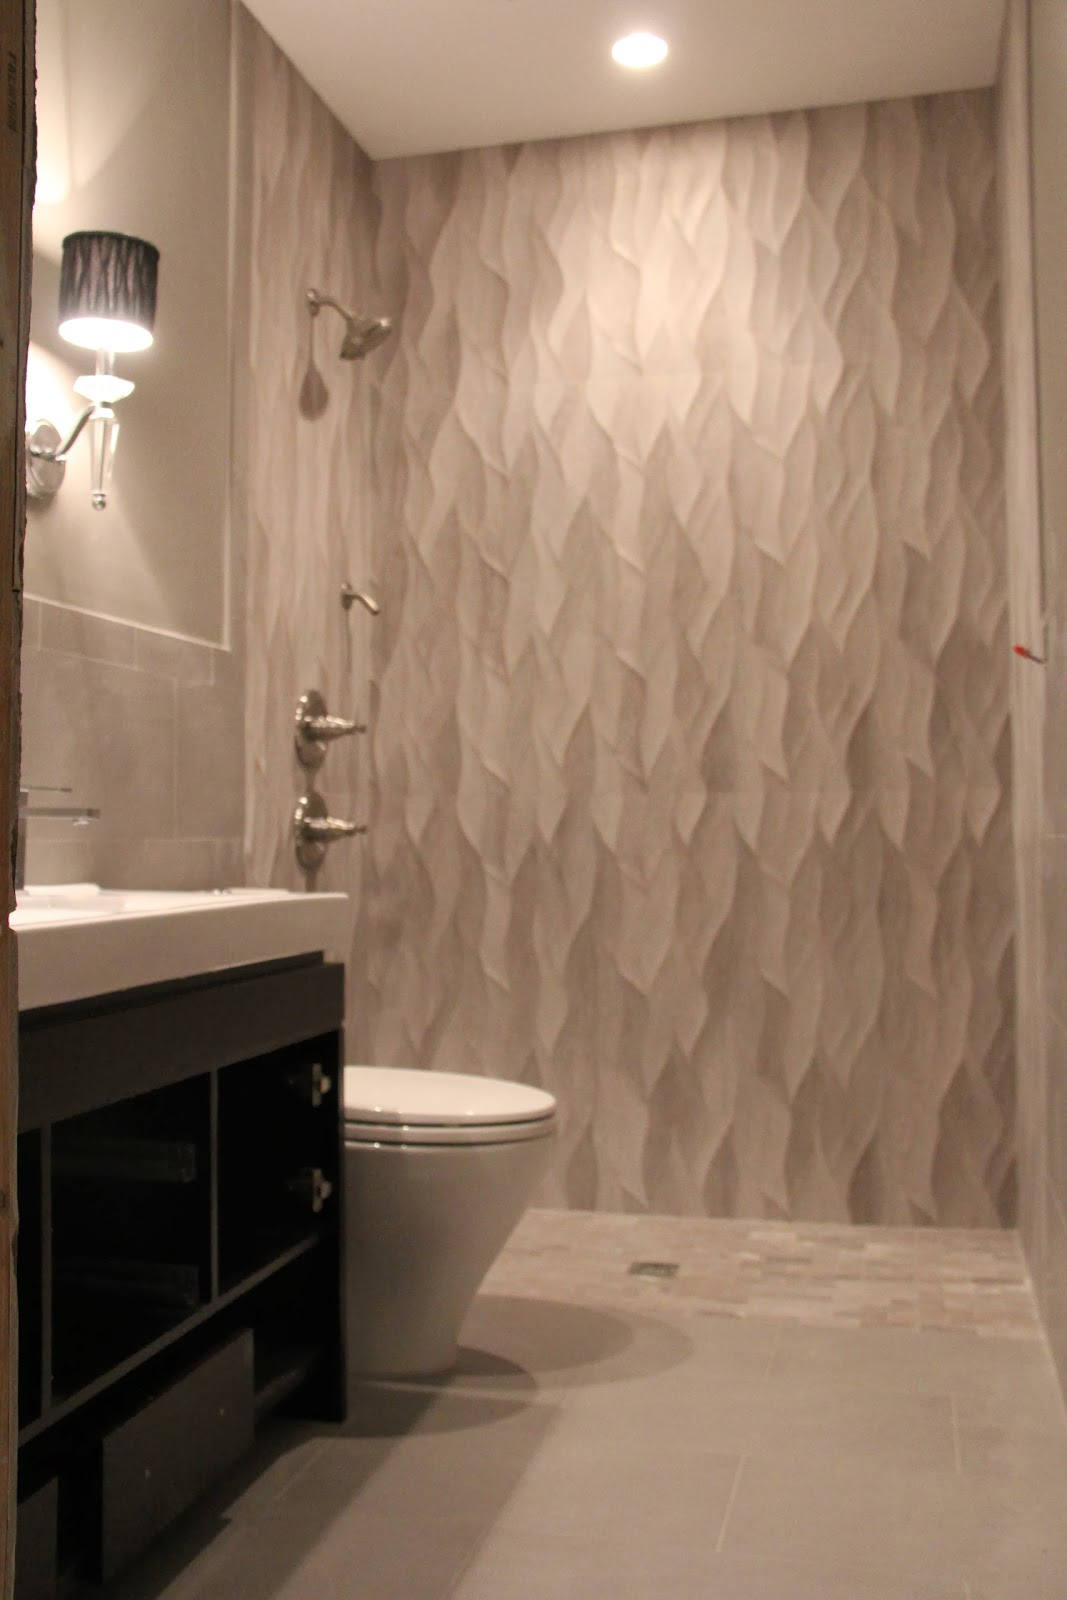 Awesome Tiles Inside The Shower Wall Has A Beautiful Smooth Wavy Texture To It,  Looks Like Water Dripping Down.